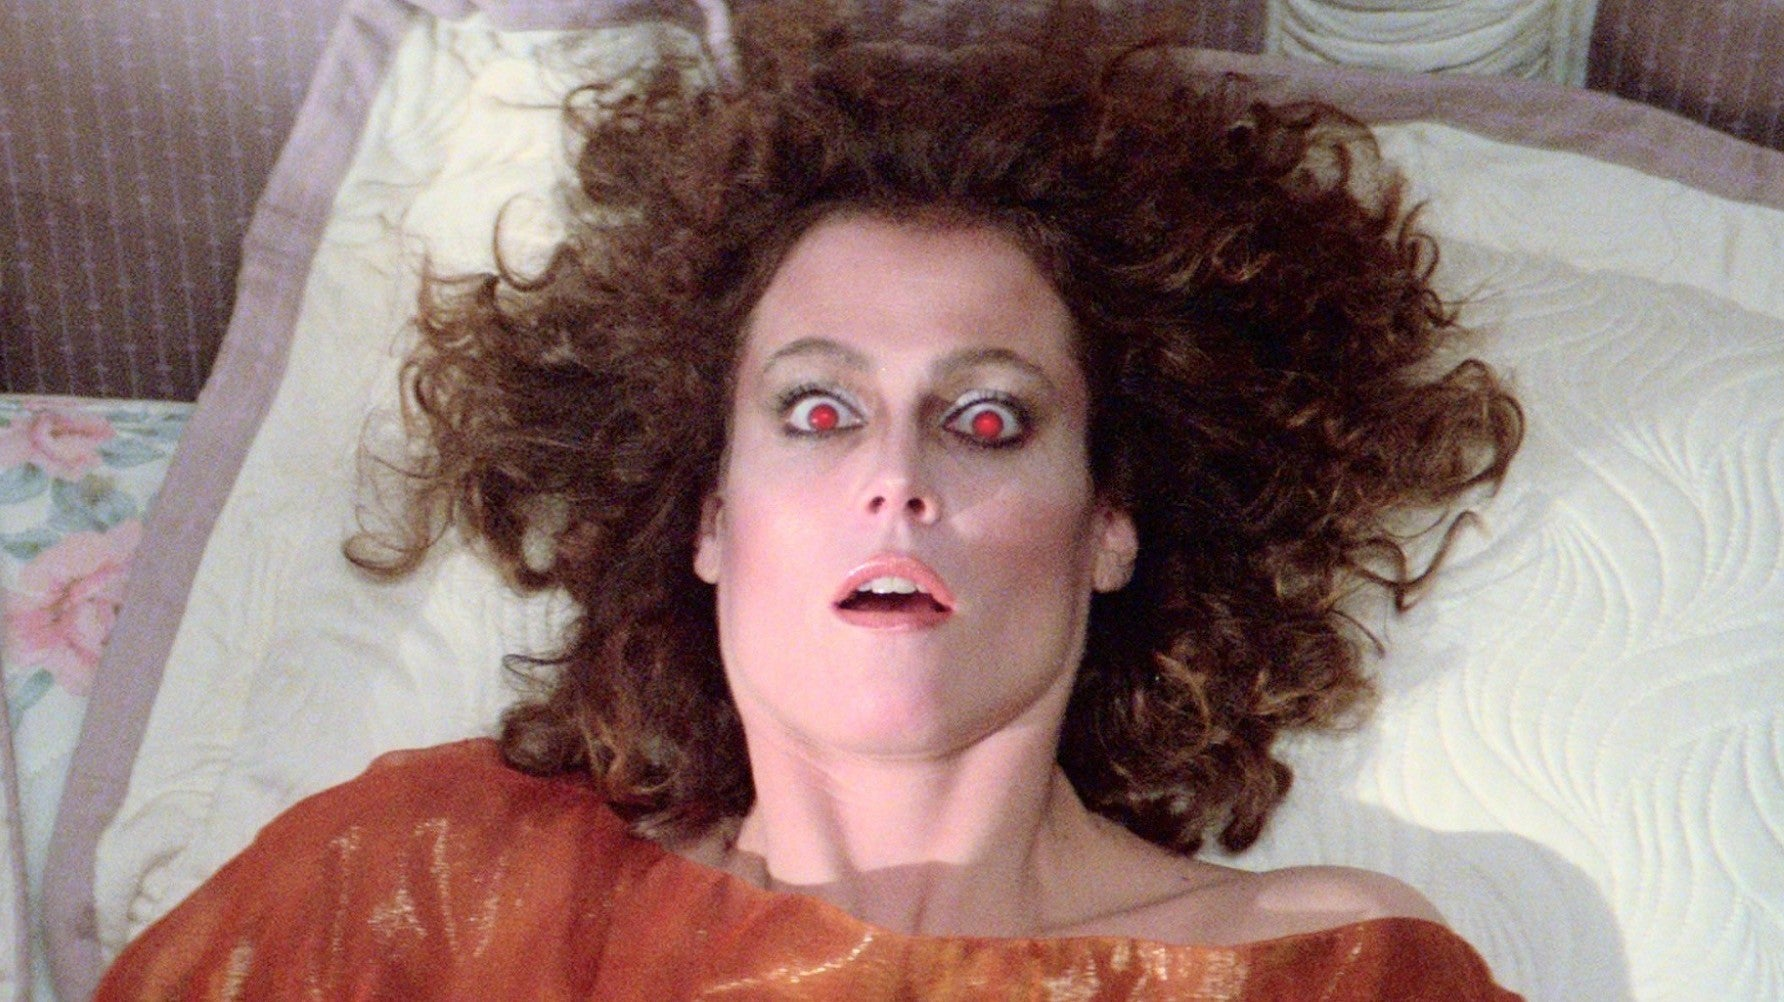 Sigourney Weaver May Be Heading Back To Ghostbusters With A Few More Original Cast Members